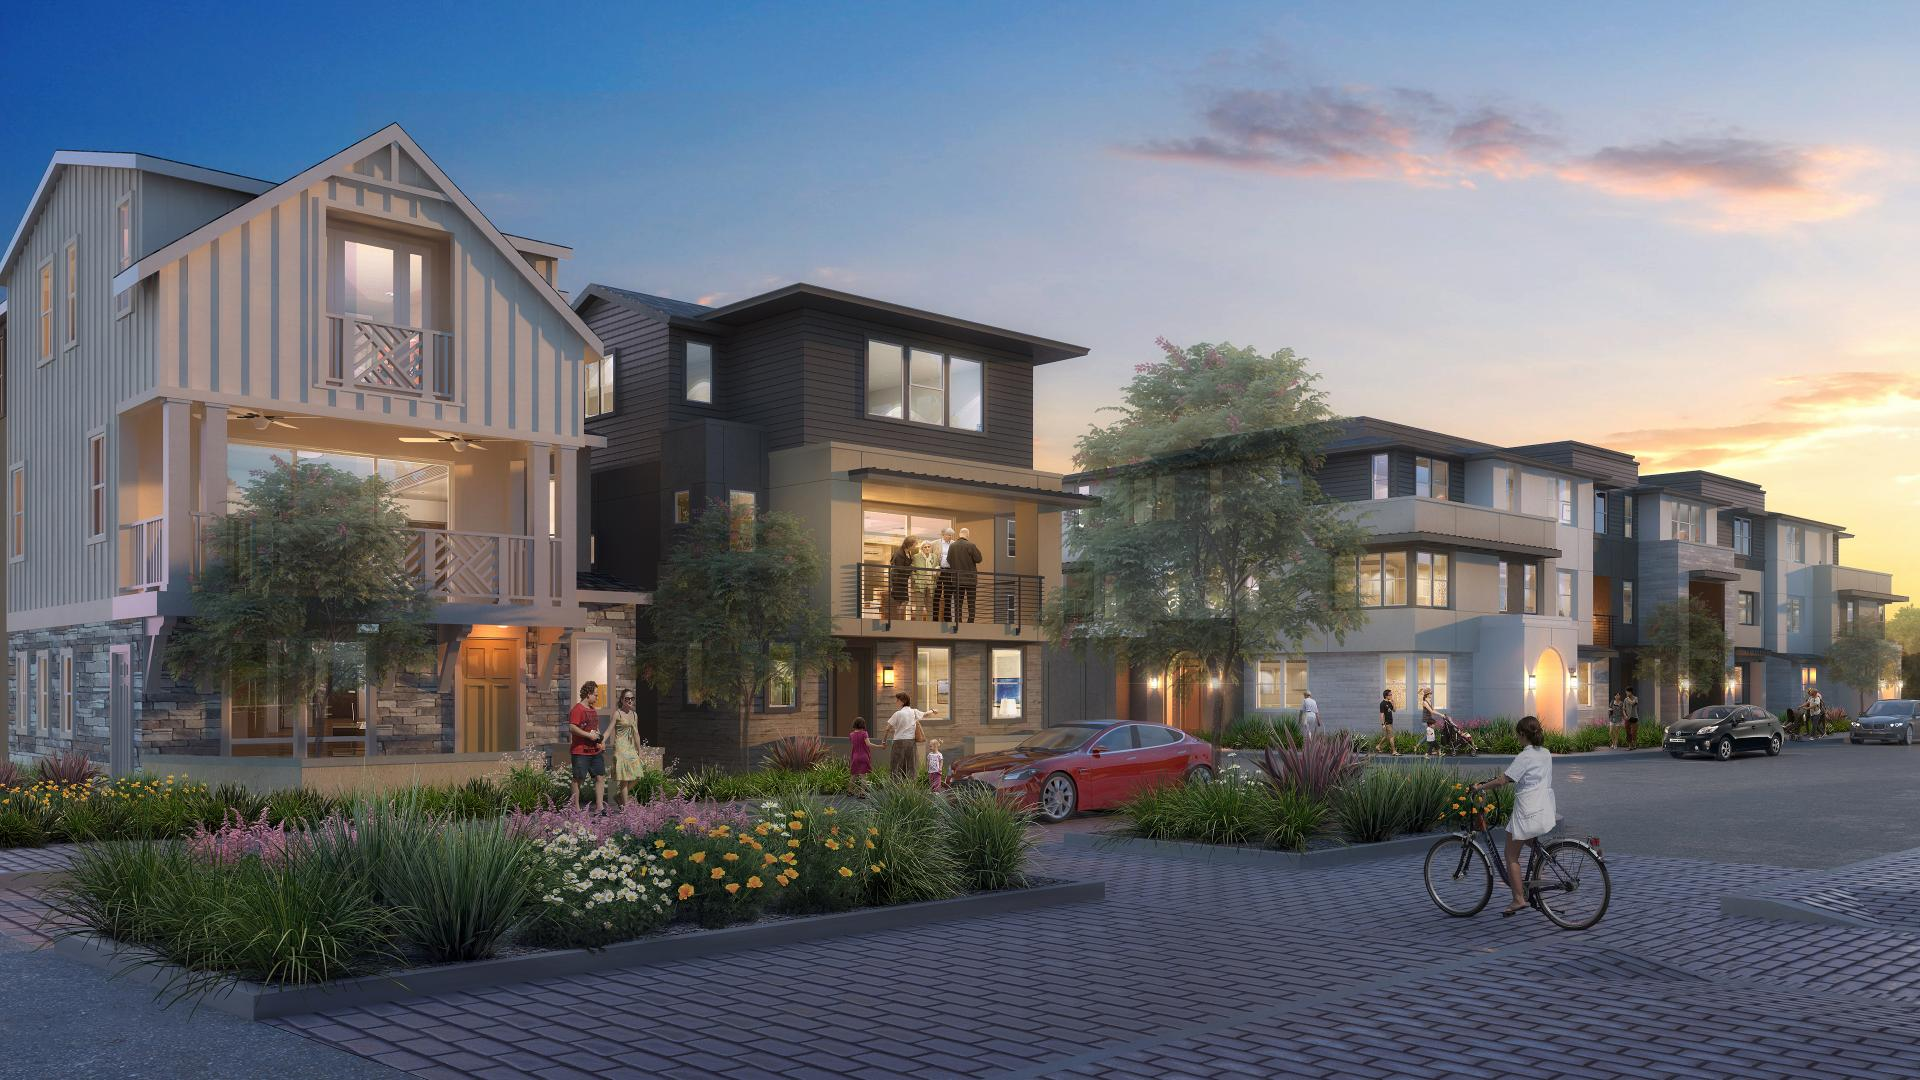 Luxurious single-family homes and townhomes set amid the rolling hills